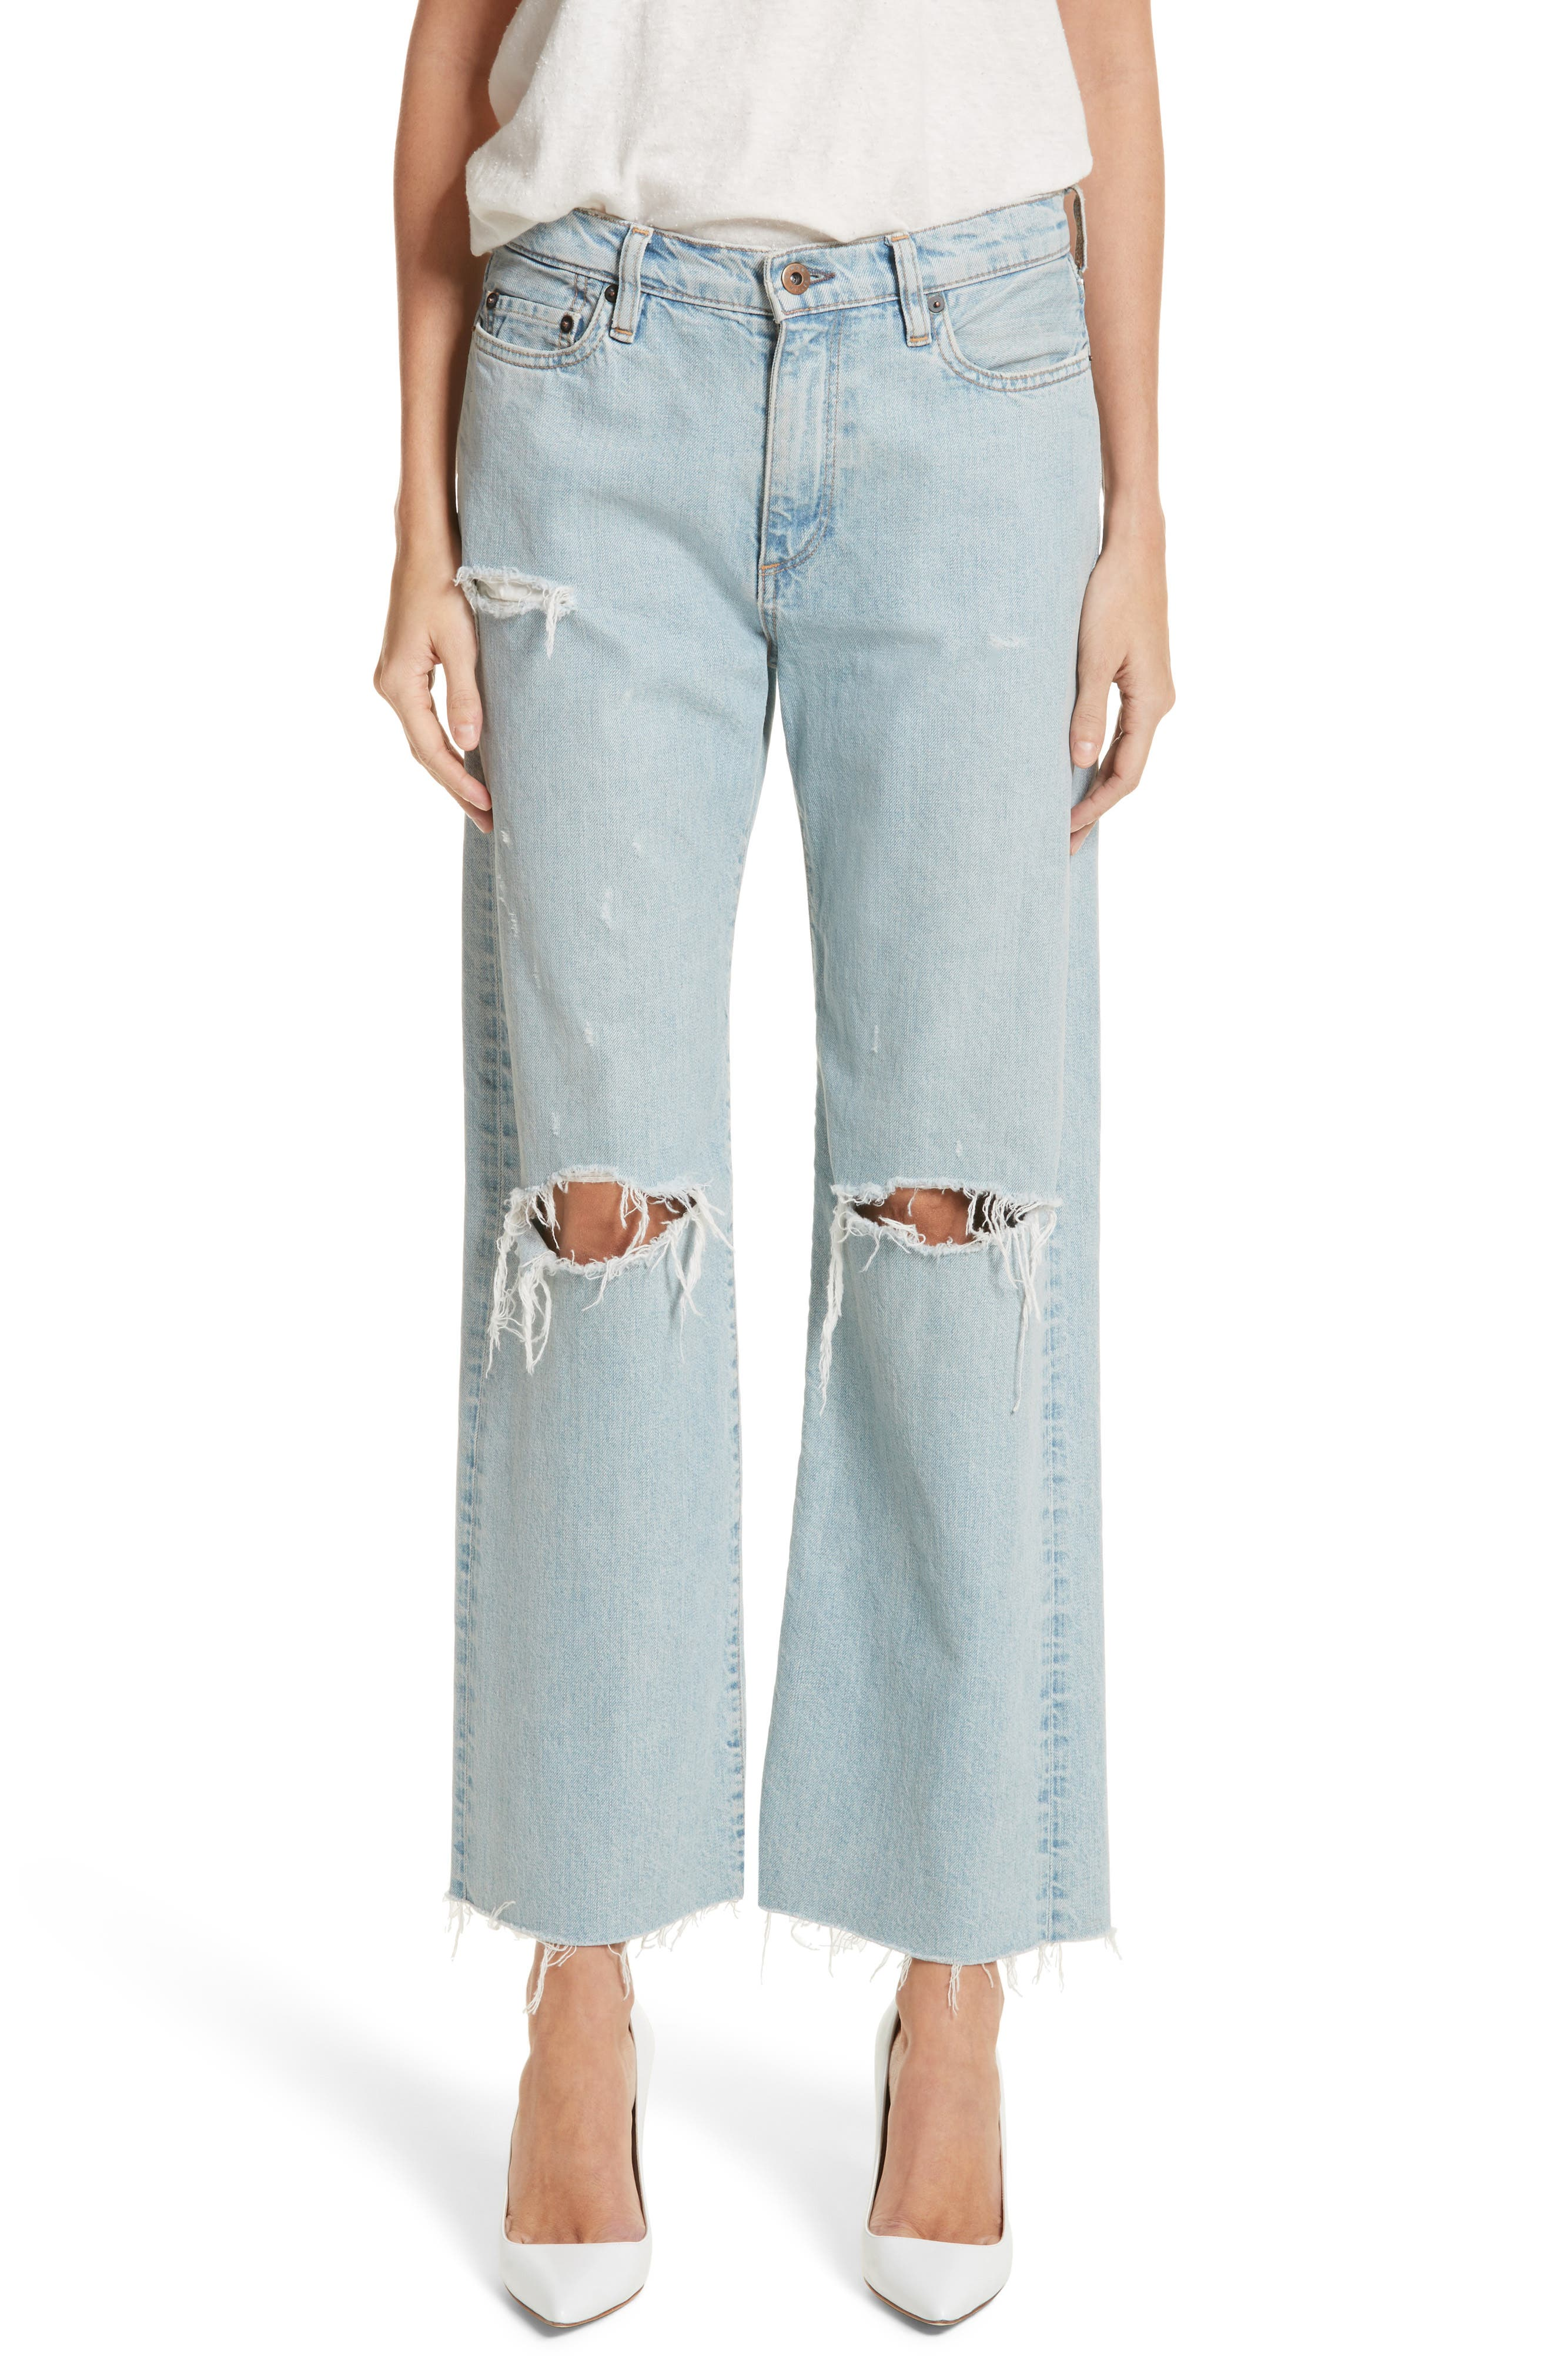 Tibbee Ripped Jeans,                         Main,                         color, 400